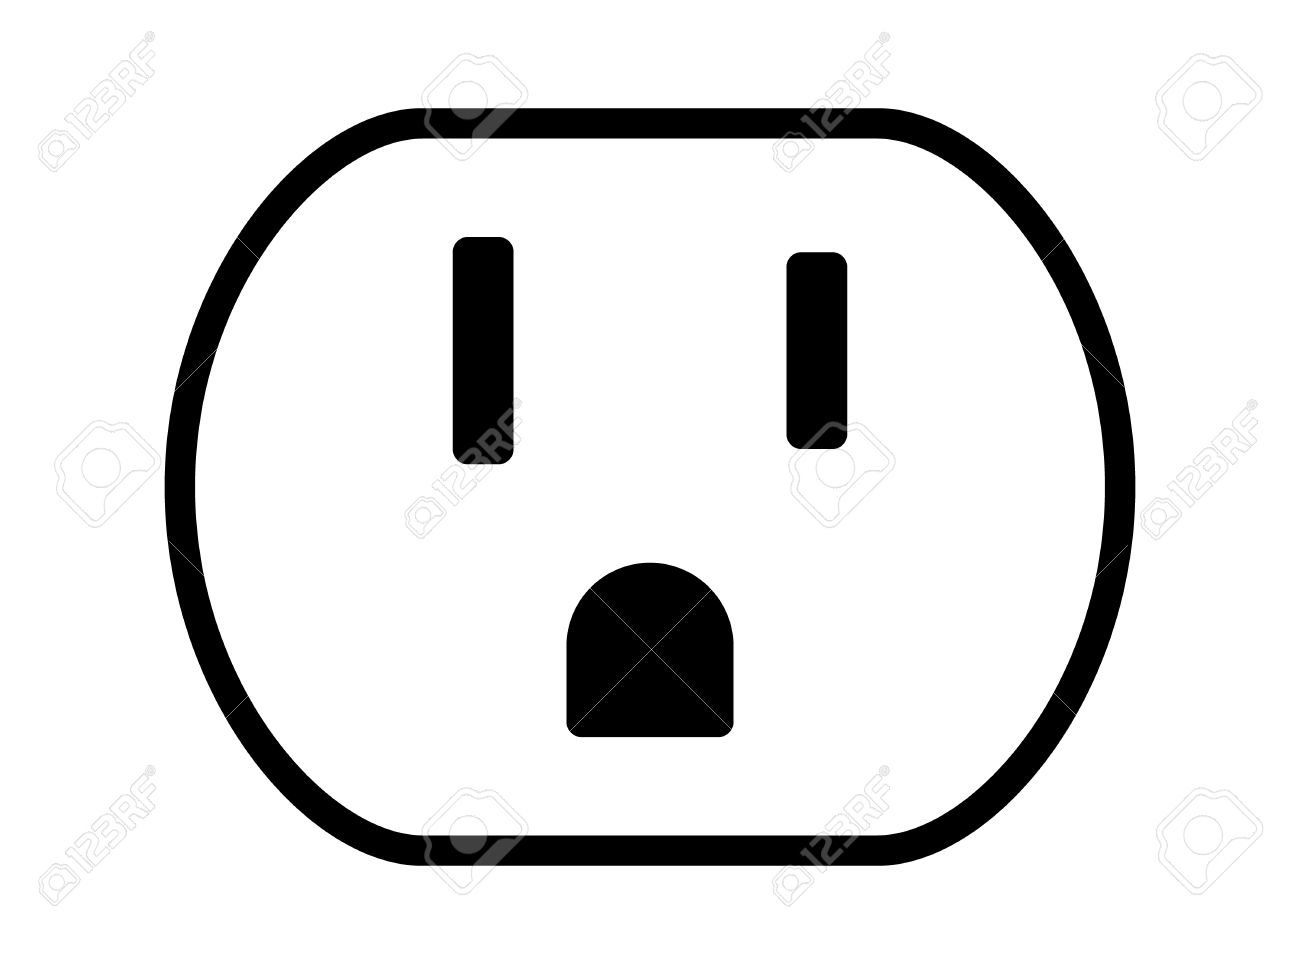 Nema 5 15 grounded power outlet ac socket line art vector icon nema 5 15 grounded power outlet ac socket line art vector icon for apps biocorpaavc Choice Image